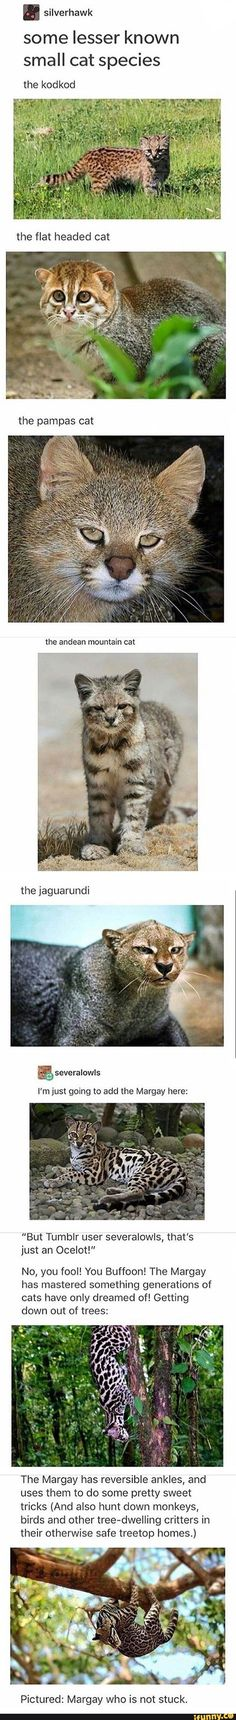 sílverhawk some lesser known small cat species the kodkod – popular memes on the Cute Funny Animals, Cute Baby Animals, Animals And Pets, Cute Cats, Funny Cats, Animal Facts, Animal Memes, Cat Species, Small Cat